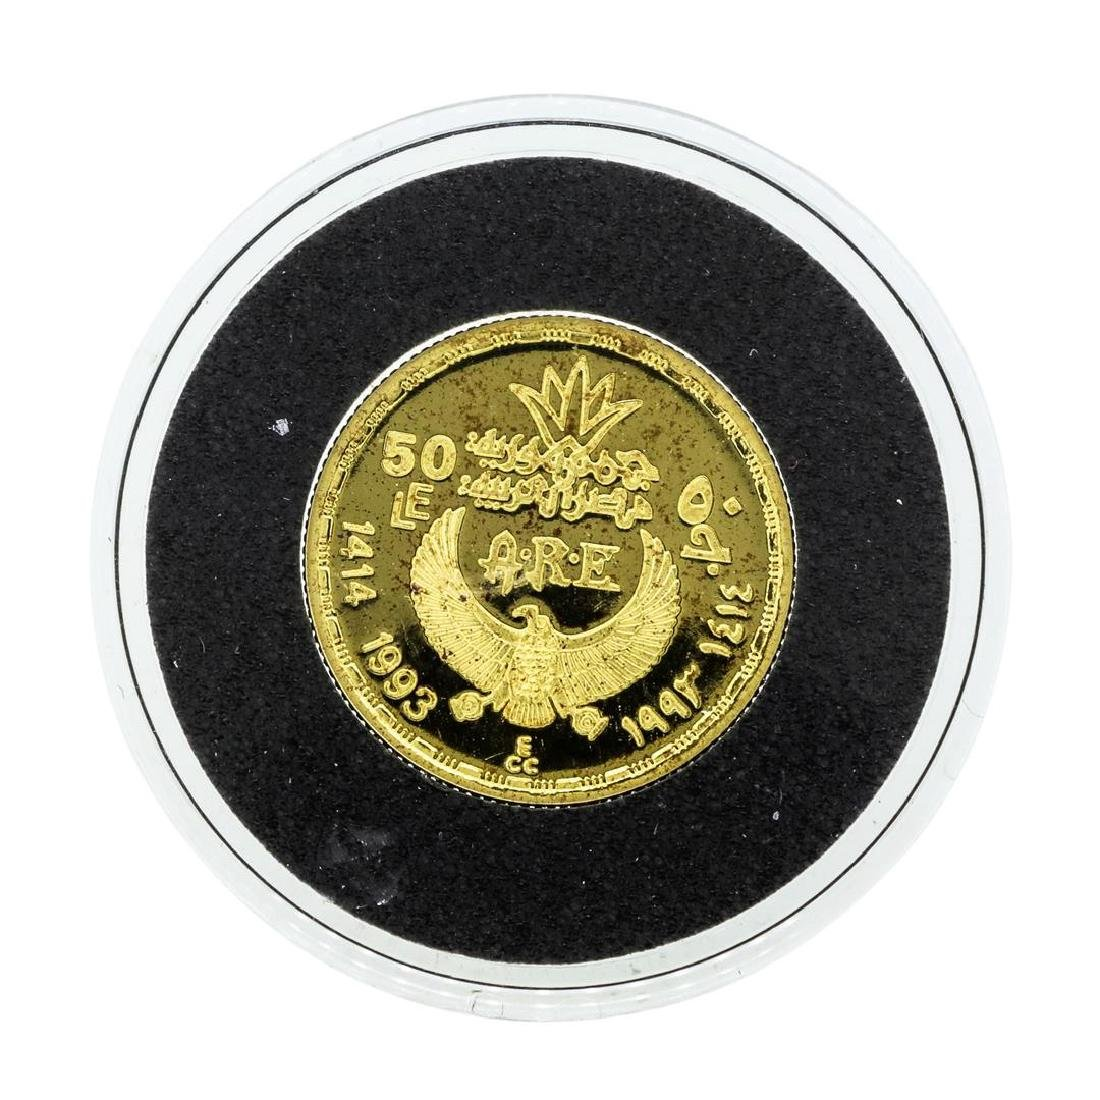 1993 1/4 oz. Egypt 50 Pound Gold Proof Coin - 2